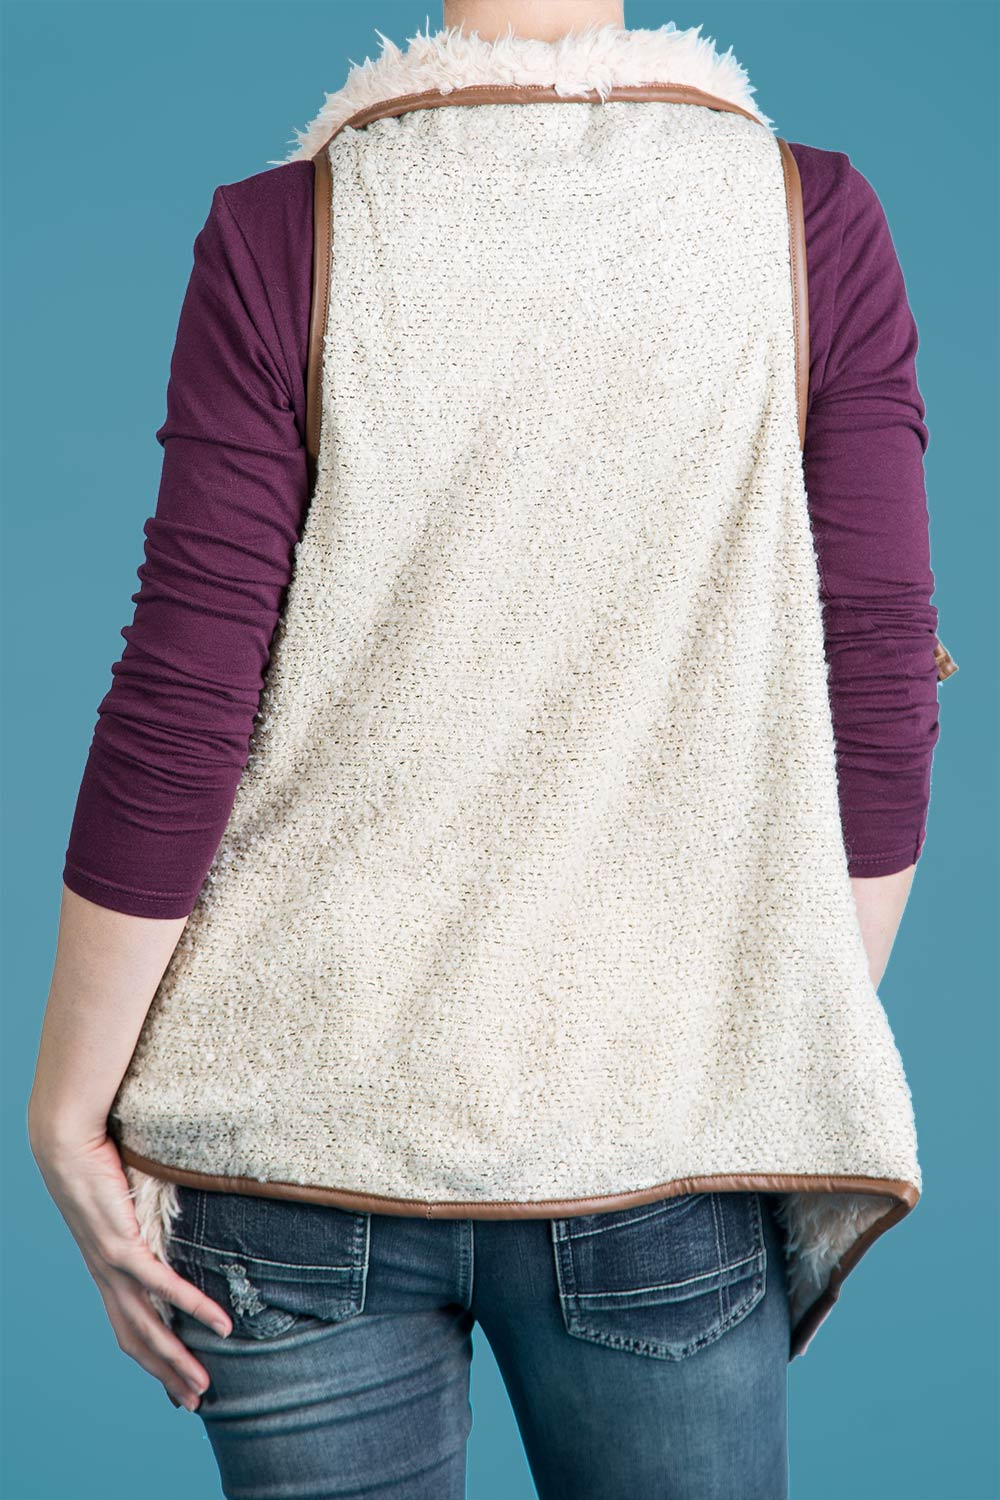 Type 3 Sheep's Wool Vest